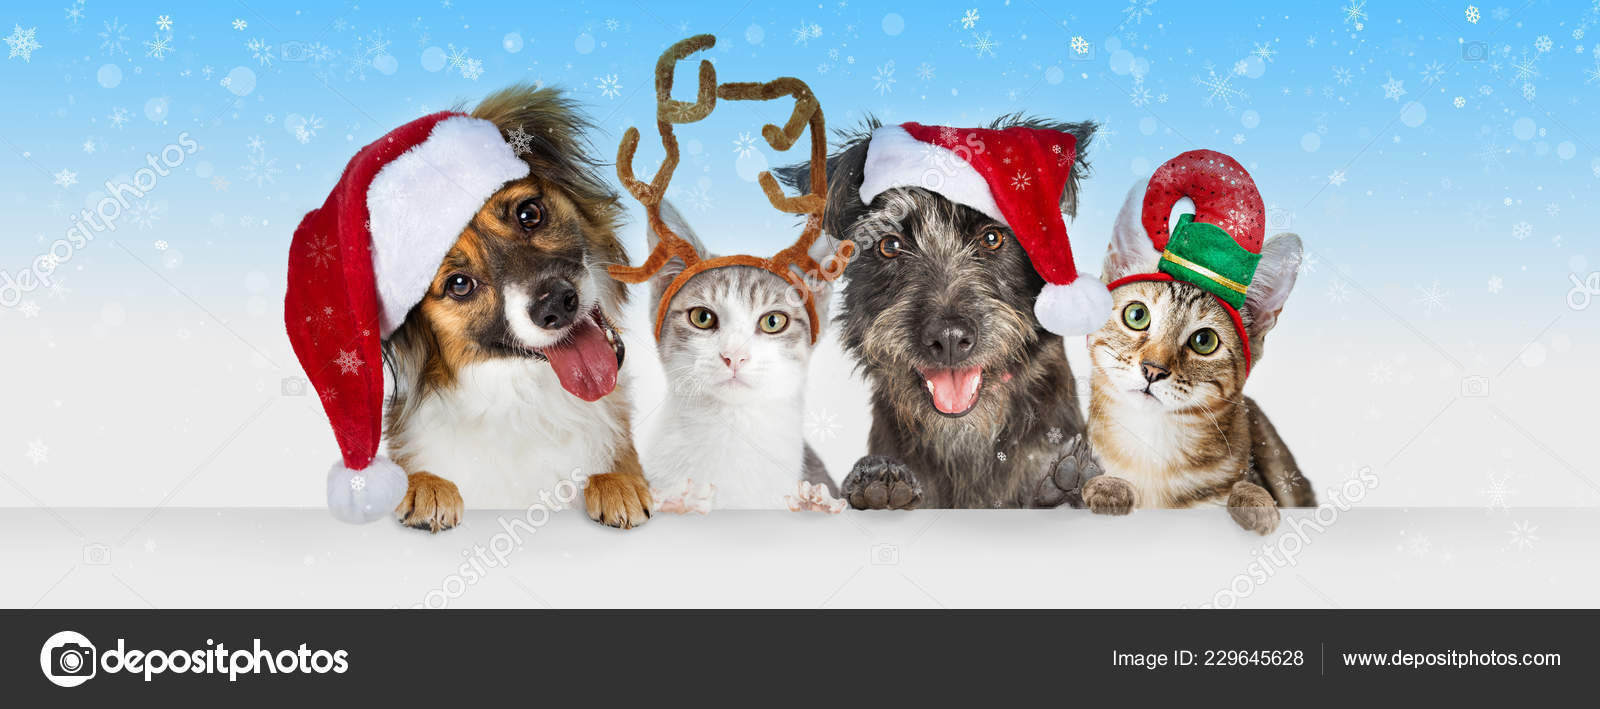 Cute Christmas Dogs Cats Santa Claus Hats Together Hanging Paws Stock Photo C Adogslifephoto 229645628